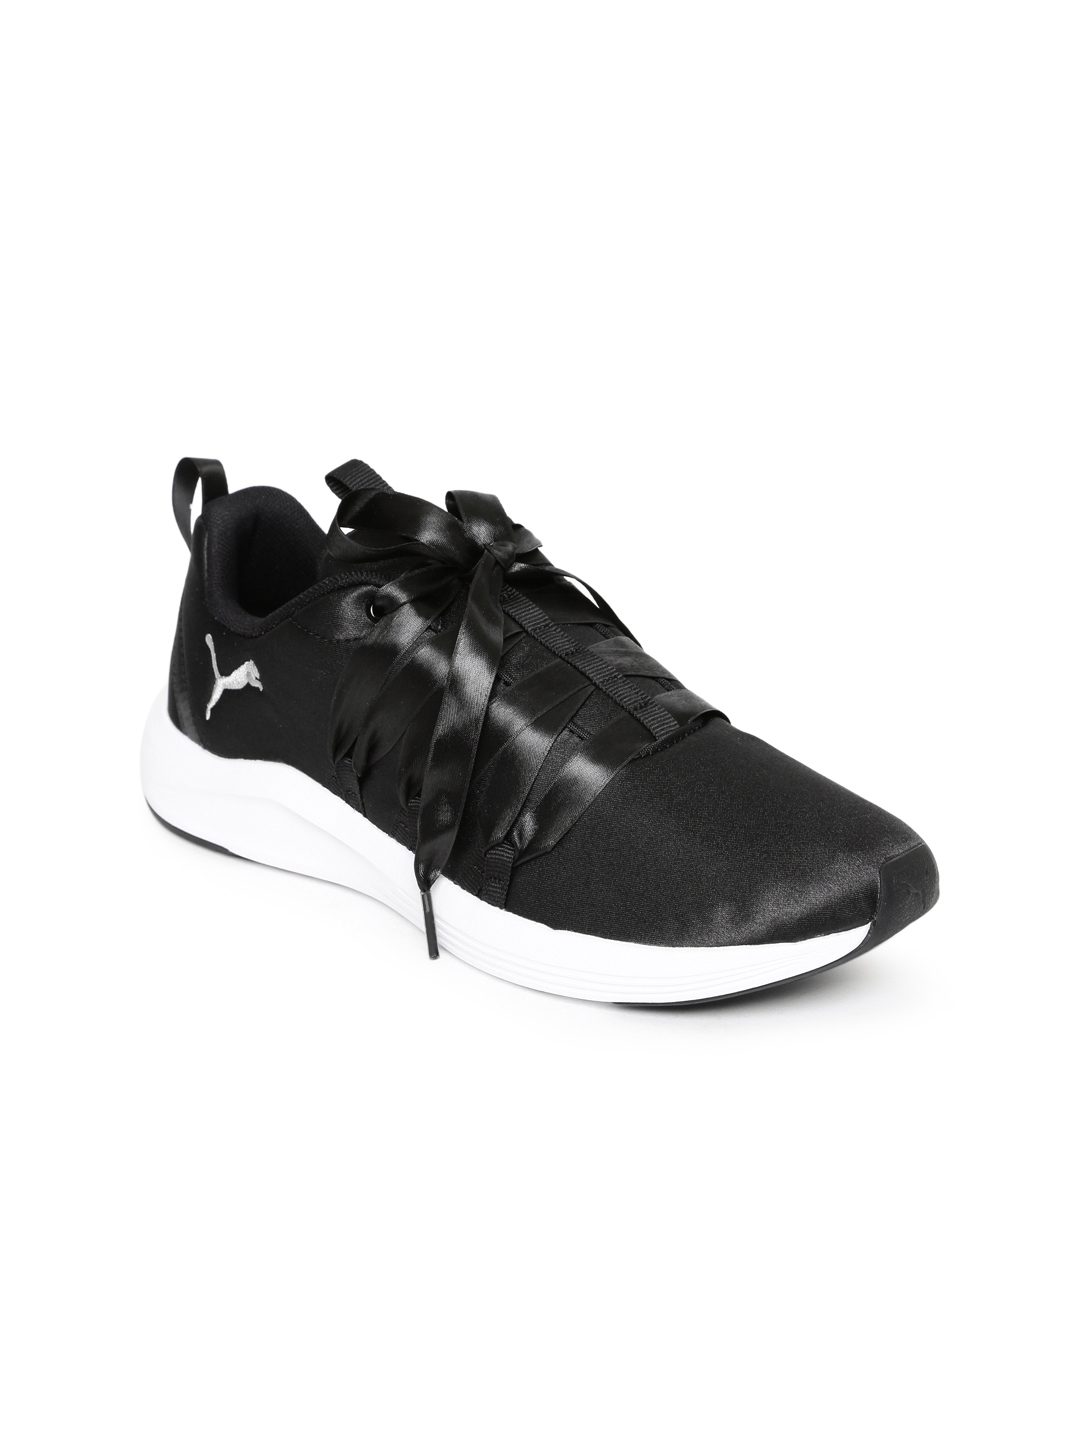 d33c6608d3cf9 Buy Puma Women Black Prowl Alt Satin Wn S Running Shoes - Sports ...